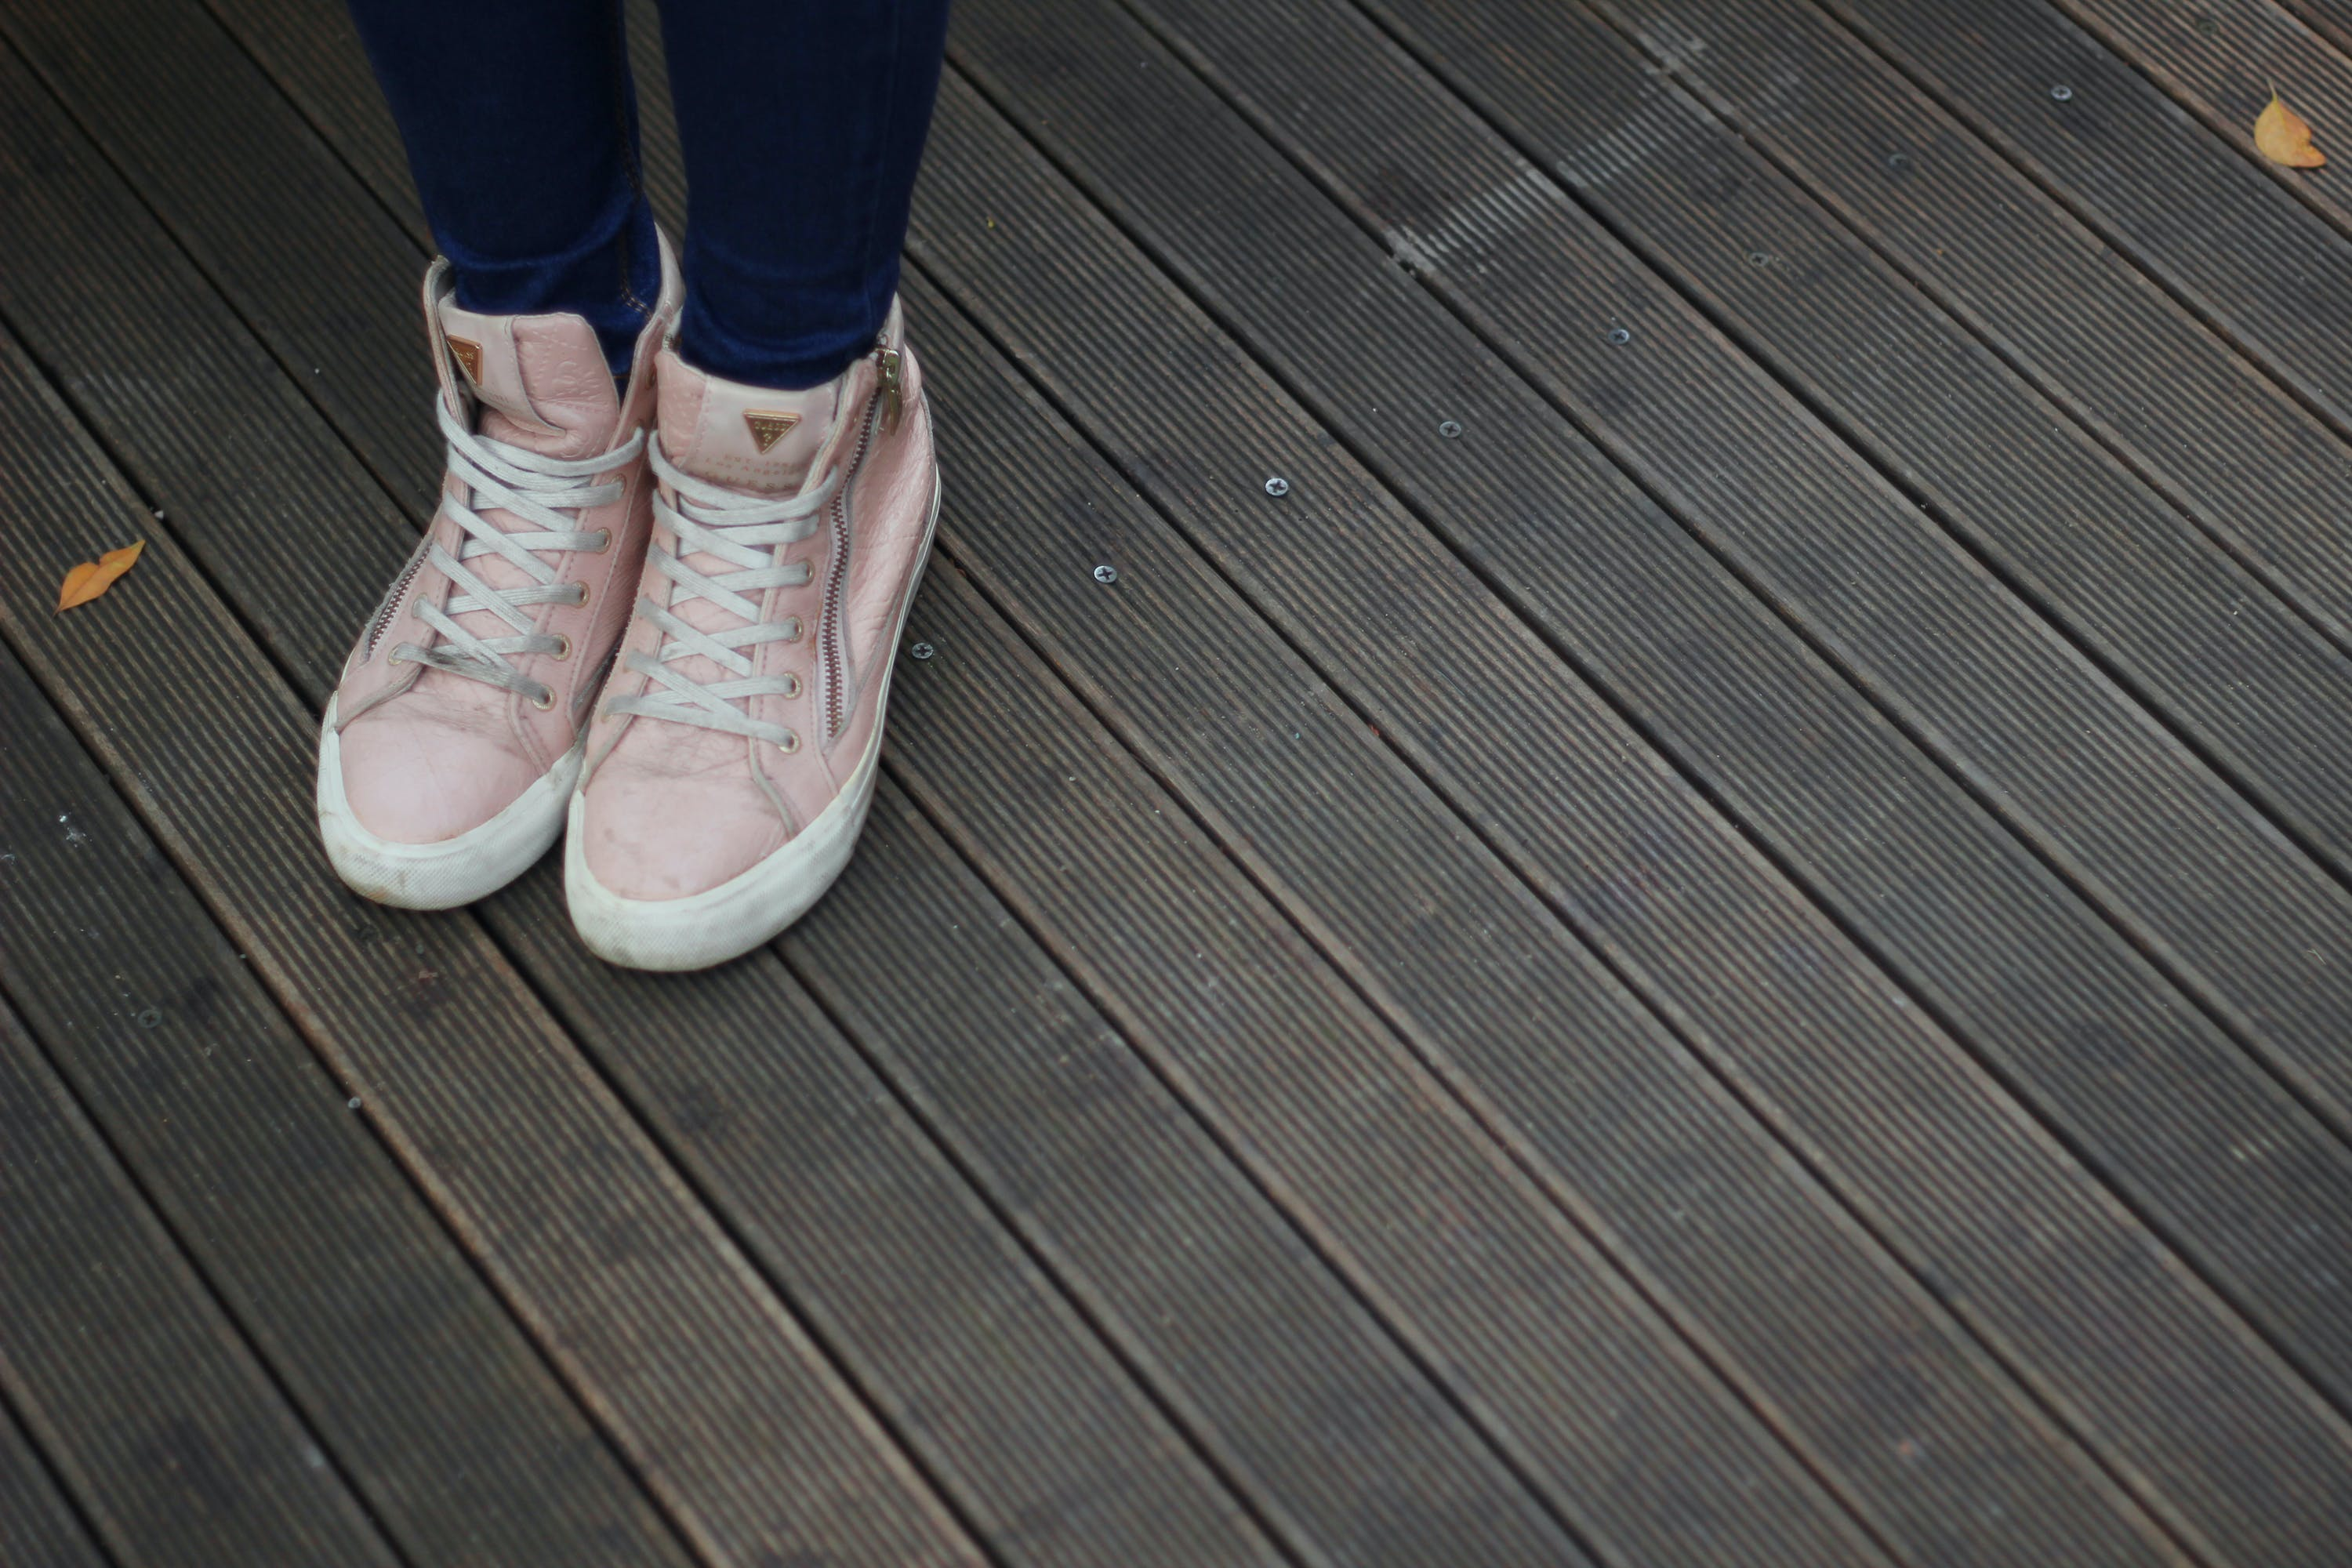 Person Wearing Pink and White High Top Sneakers